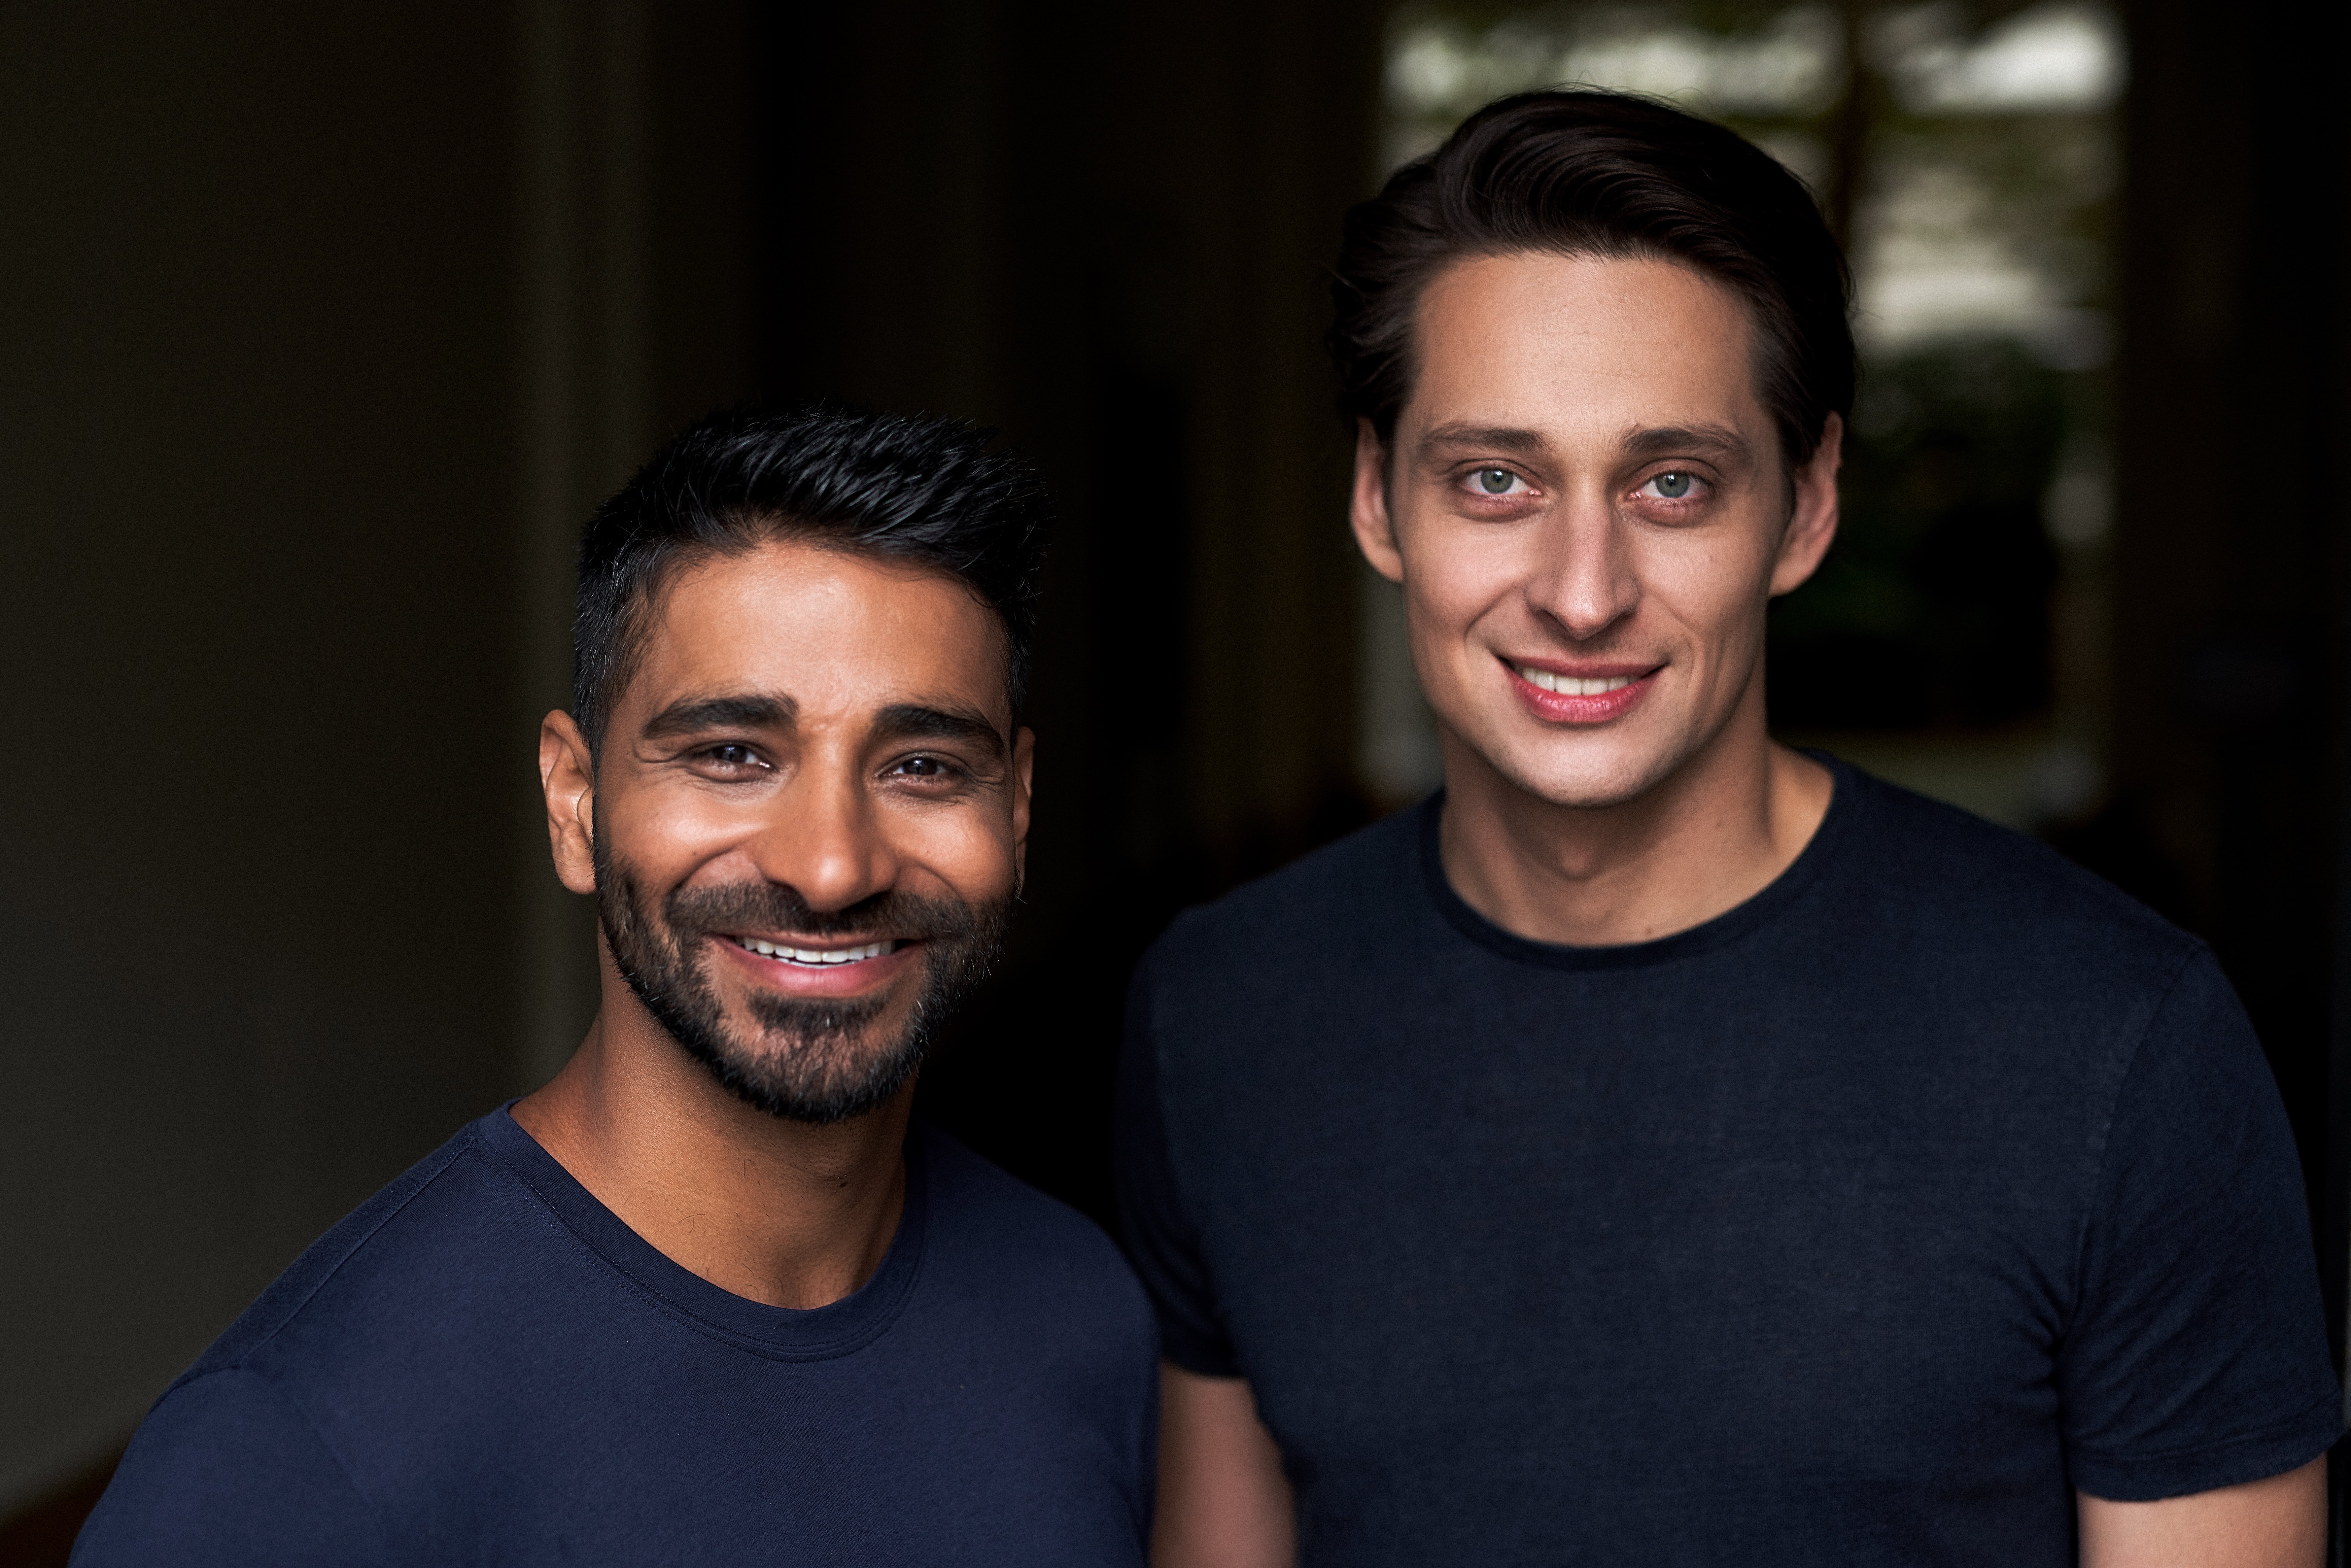 Uncapped founders Asher Ismail and Piotr Pisarz